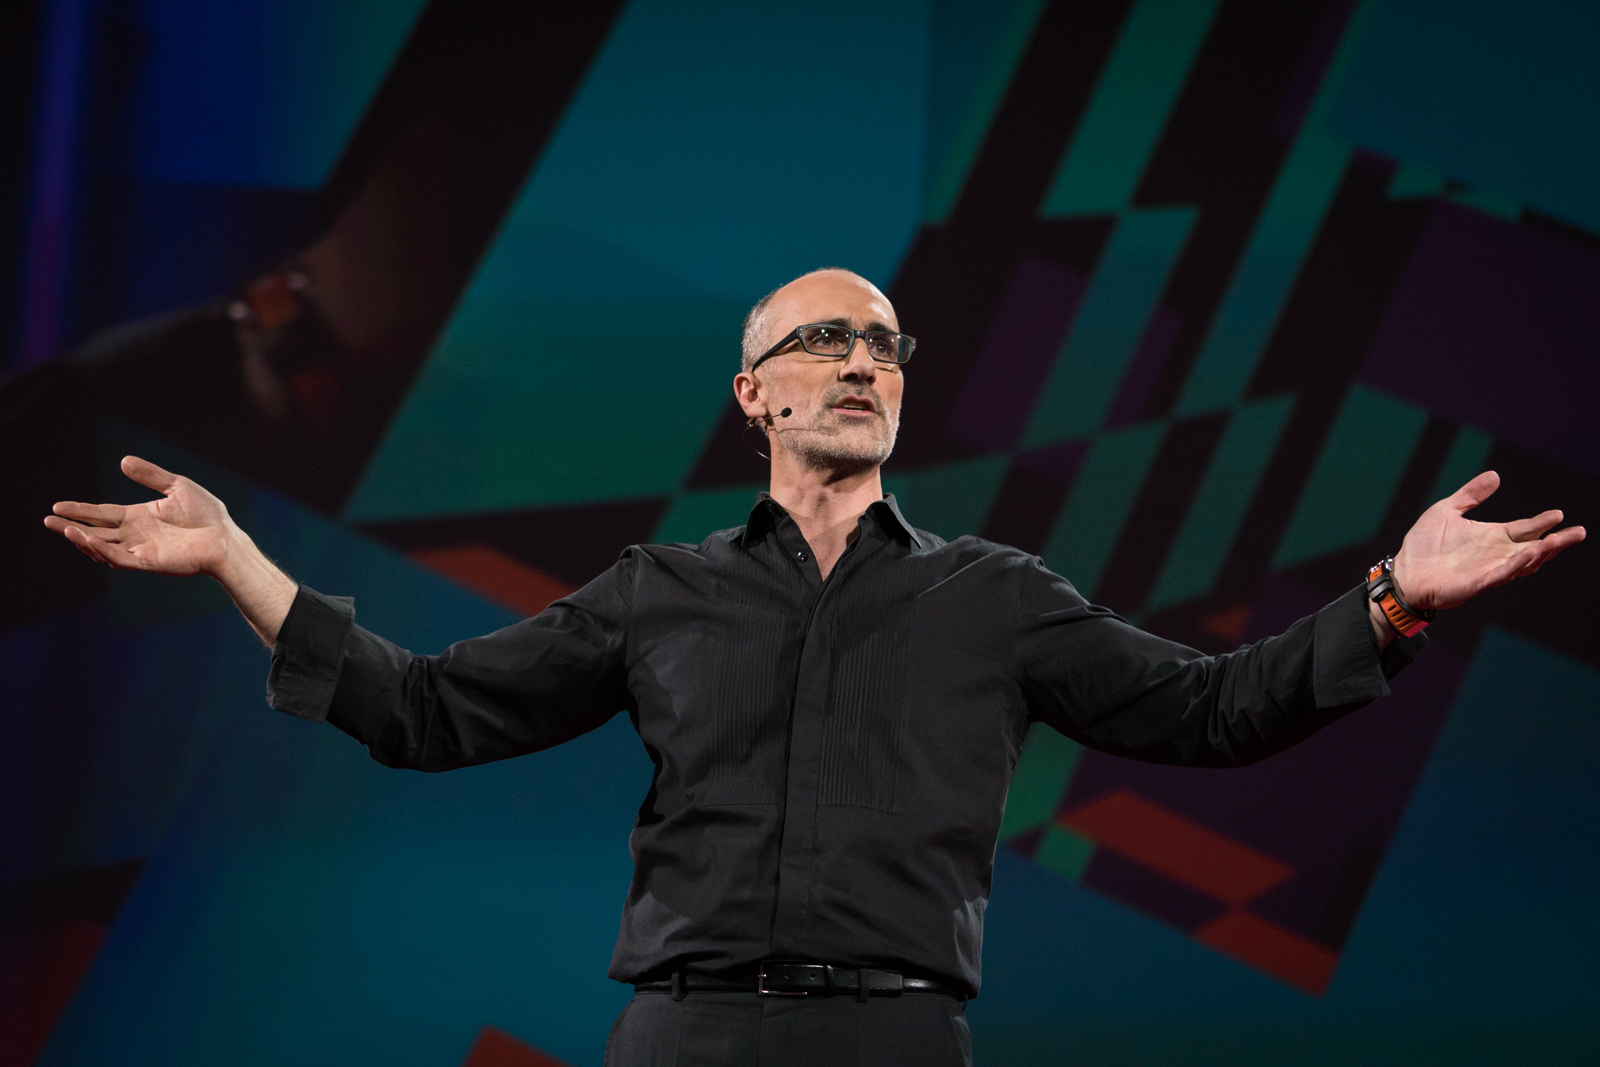 Arthur Brooks speaks at TED2016 - Dream, February 15-19, 2016, Vancouver Convention Center, Vancouver, Canada. Photo: Bret Hartman / TED